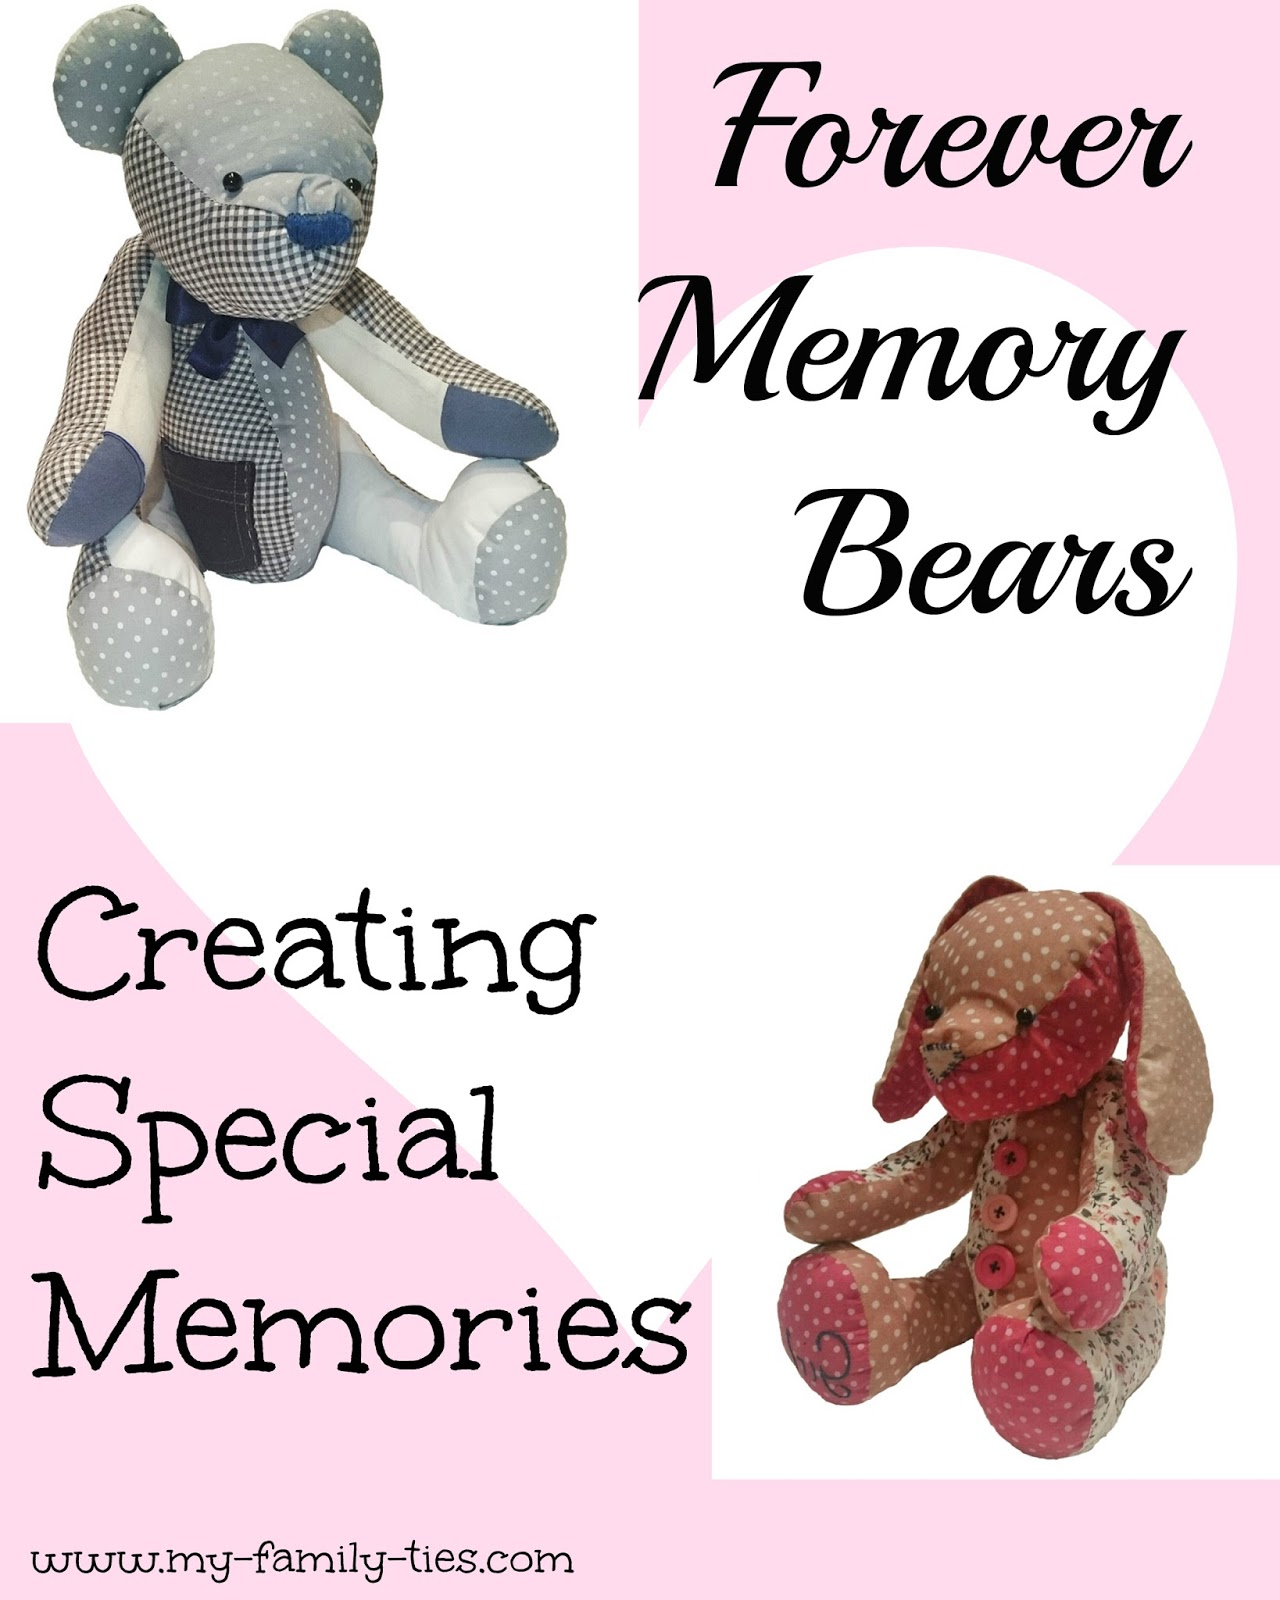 forever-Memory-Bears-Free-Gift-Card-For-all-my-readers-my-family-ties-blog